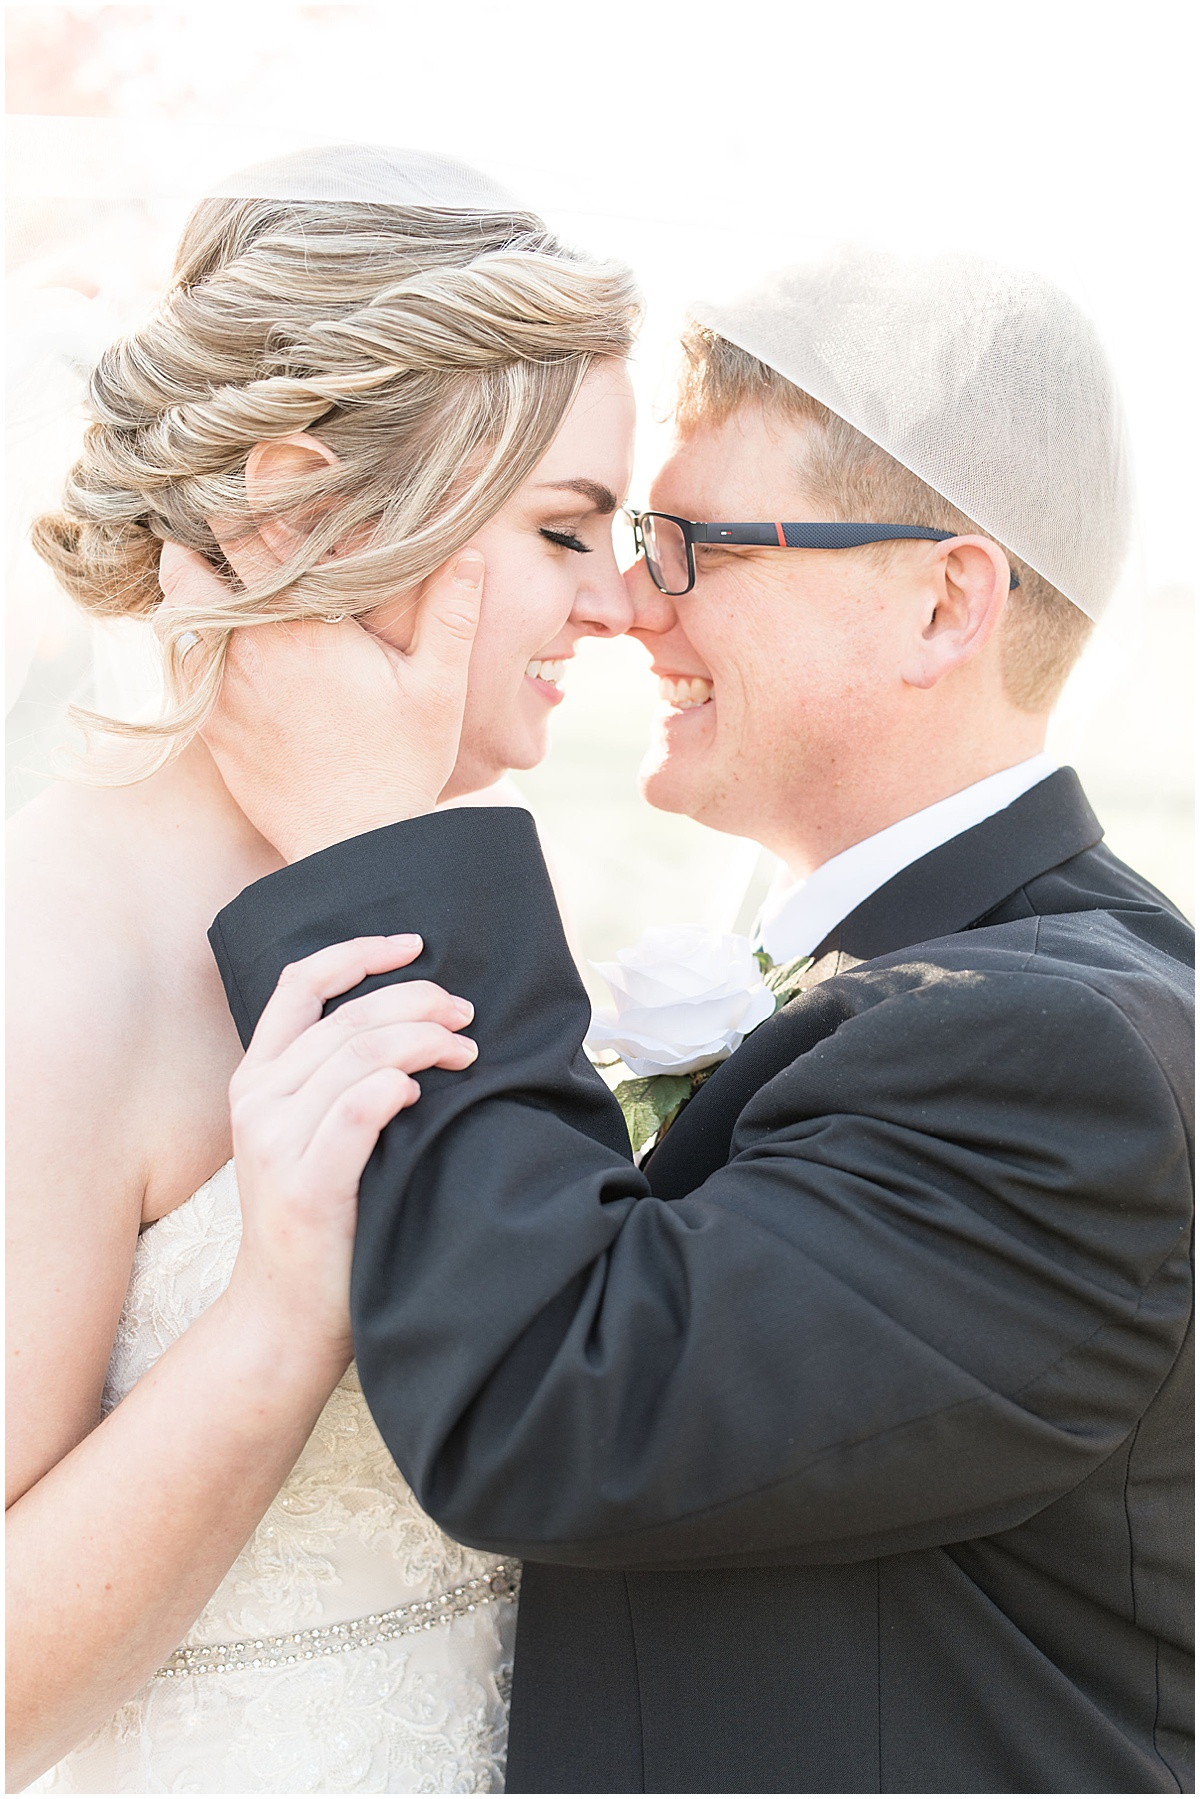 Just married photos at Cornerstone Christian Church wedding in Brownsburg, Indiana by Victoria Rayburn Photography